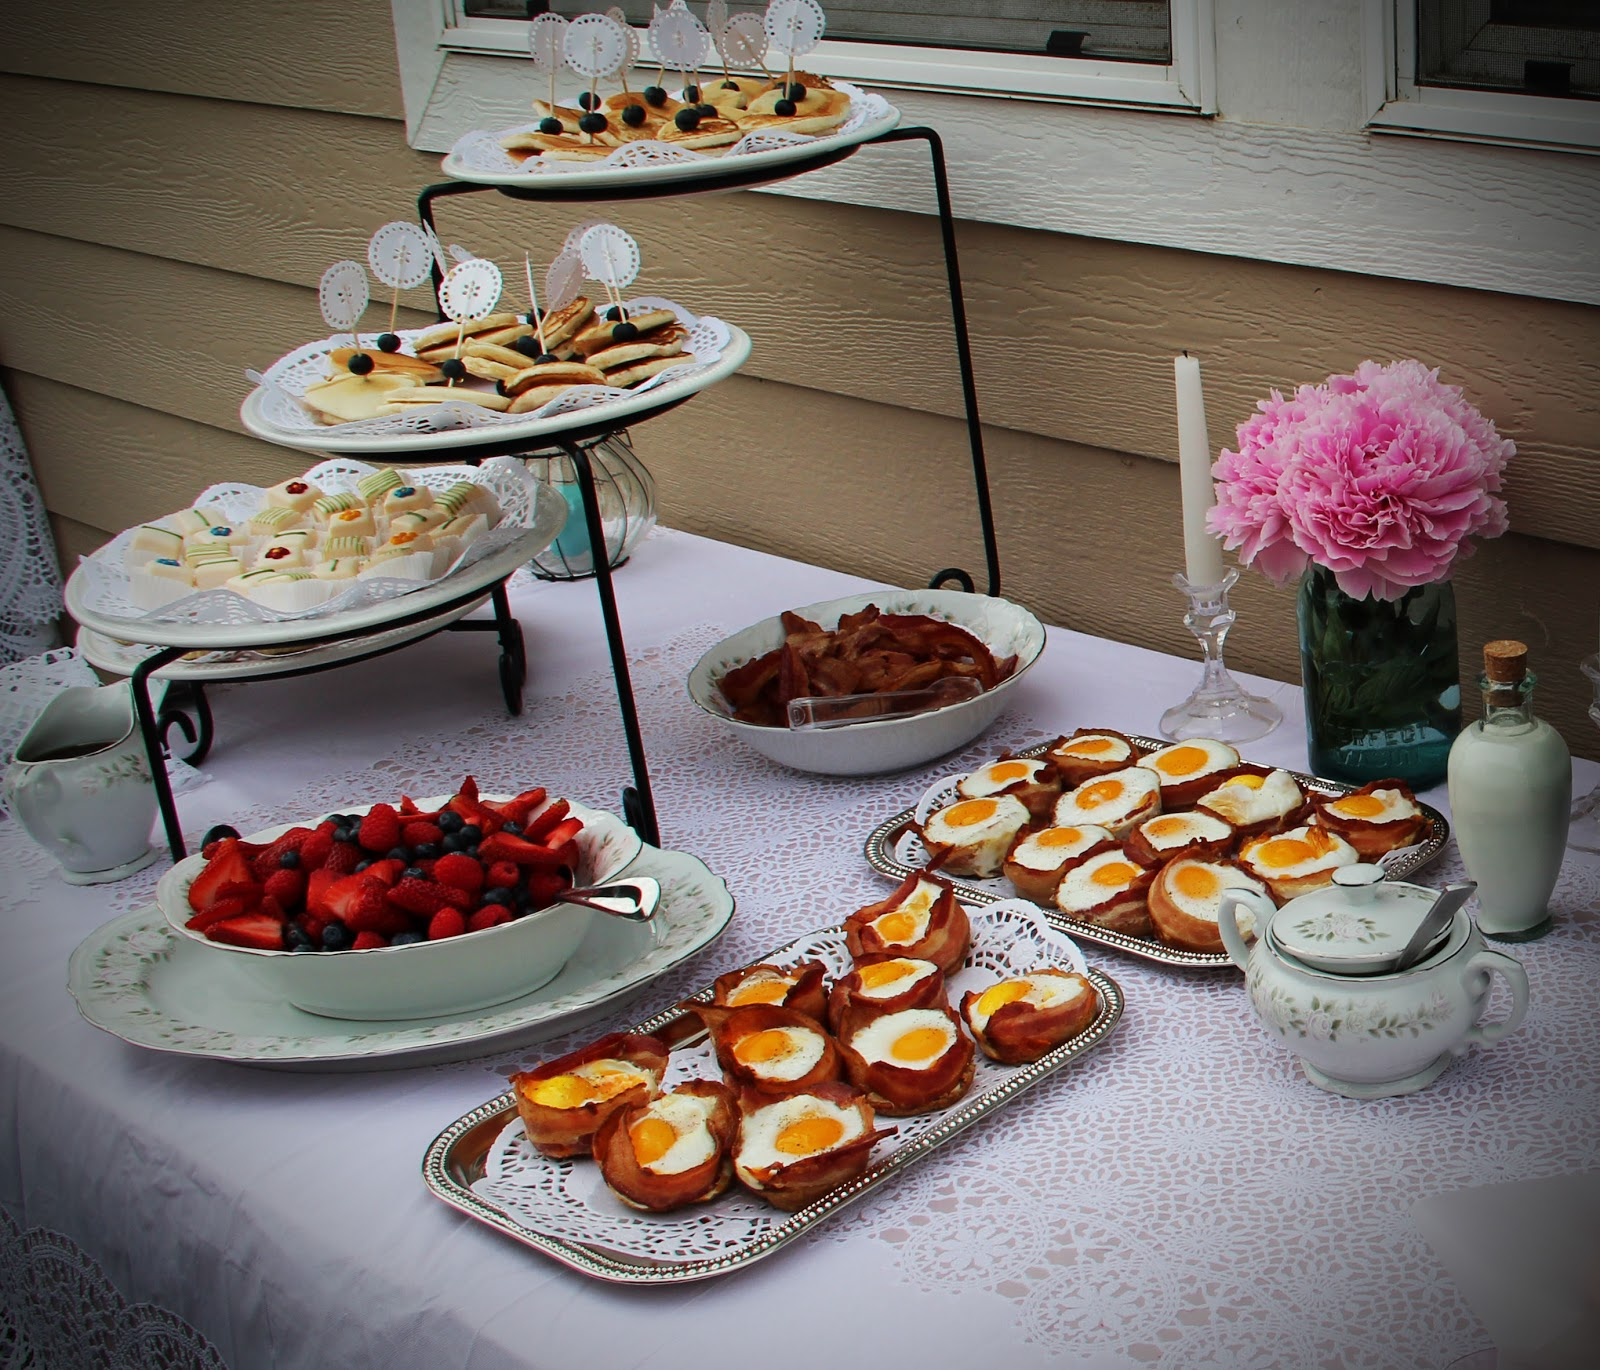 Wedding Finger Food Menu: Wedding Details: Breakfast At Tiffany's Inspired Bridal Shower